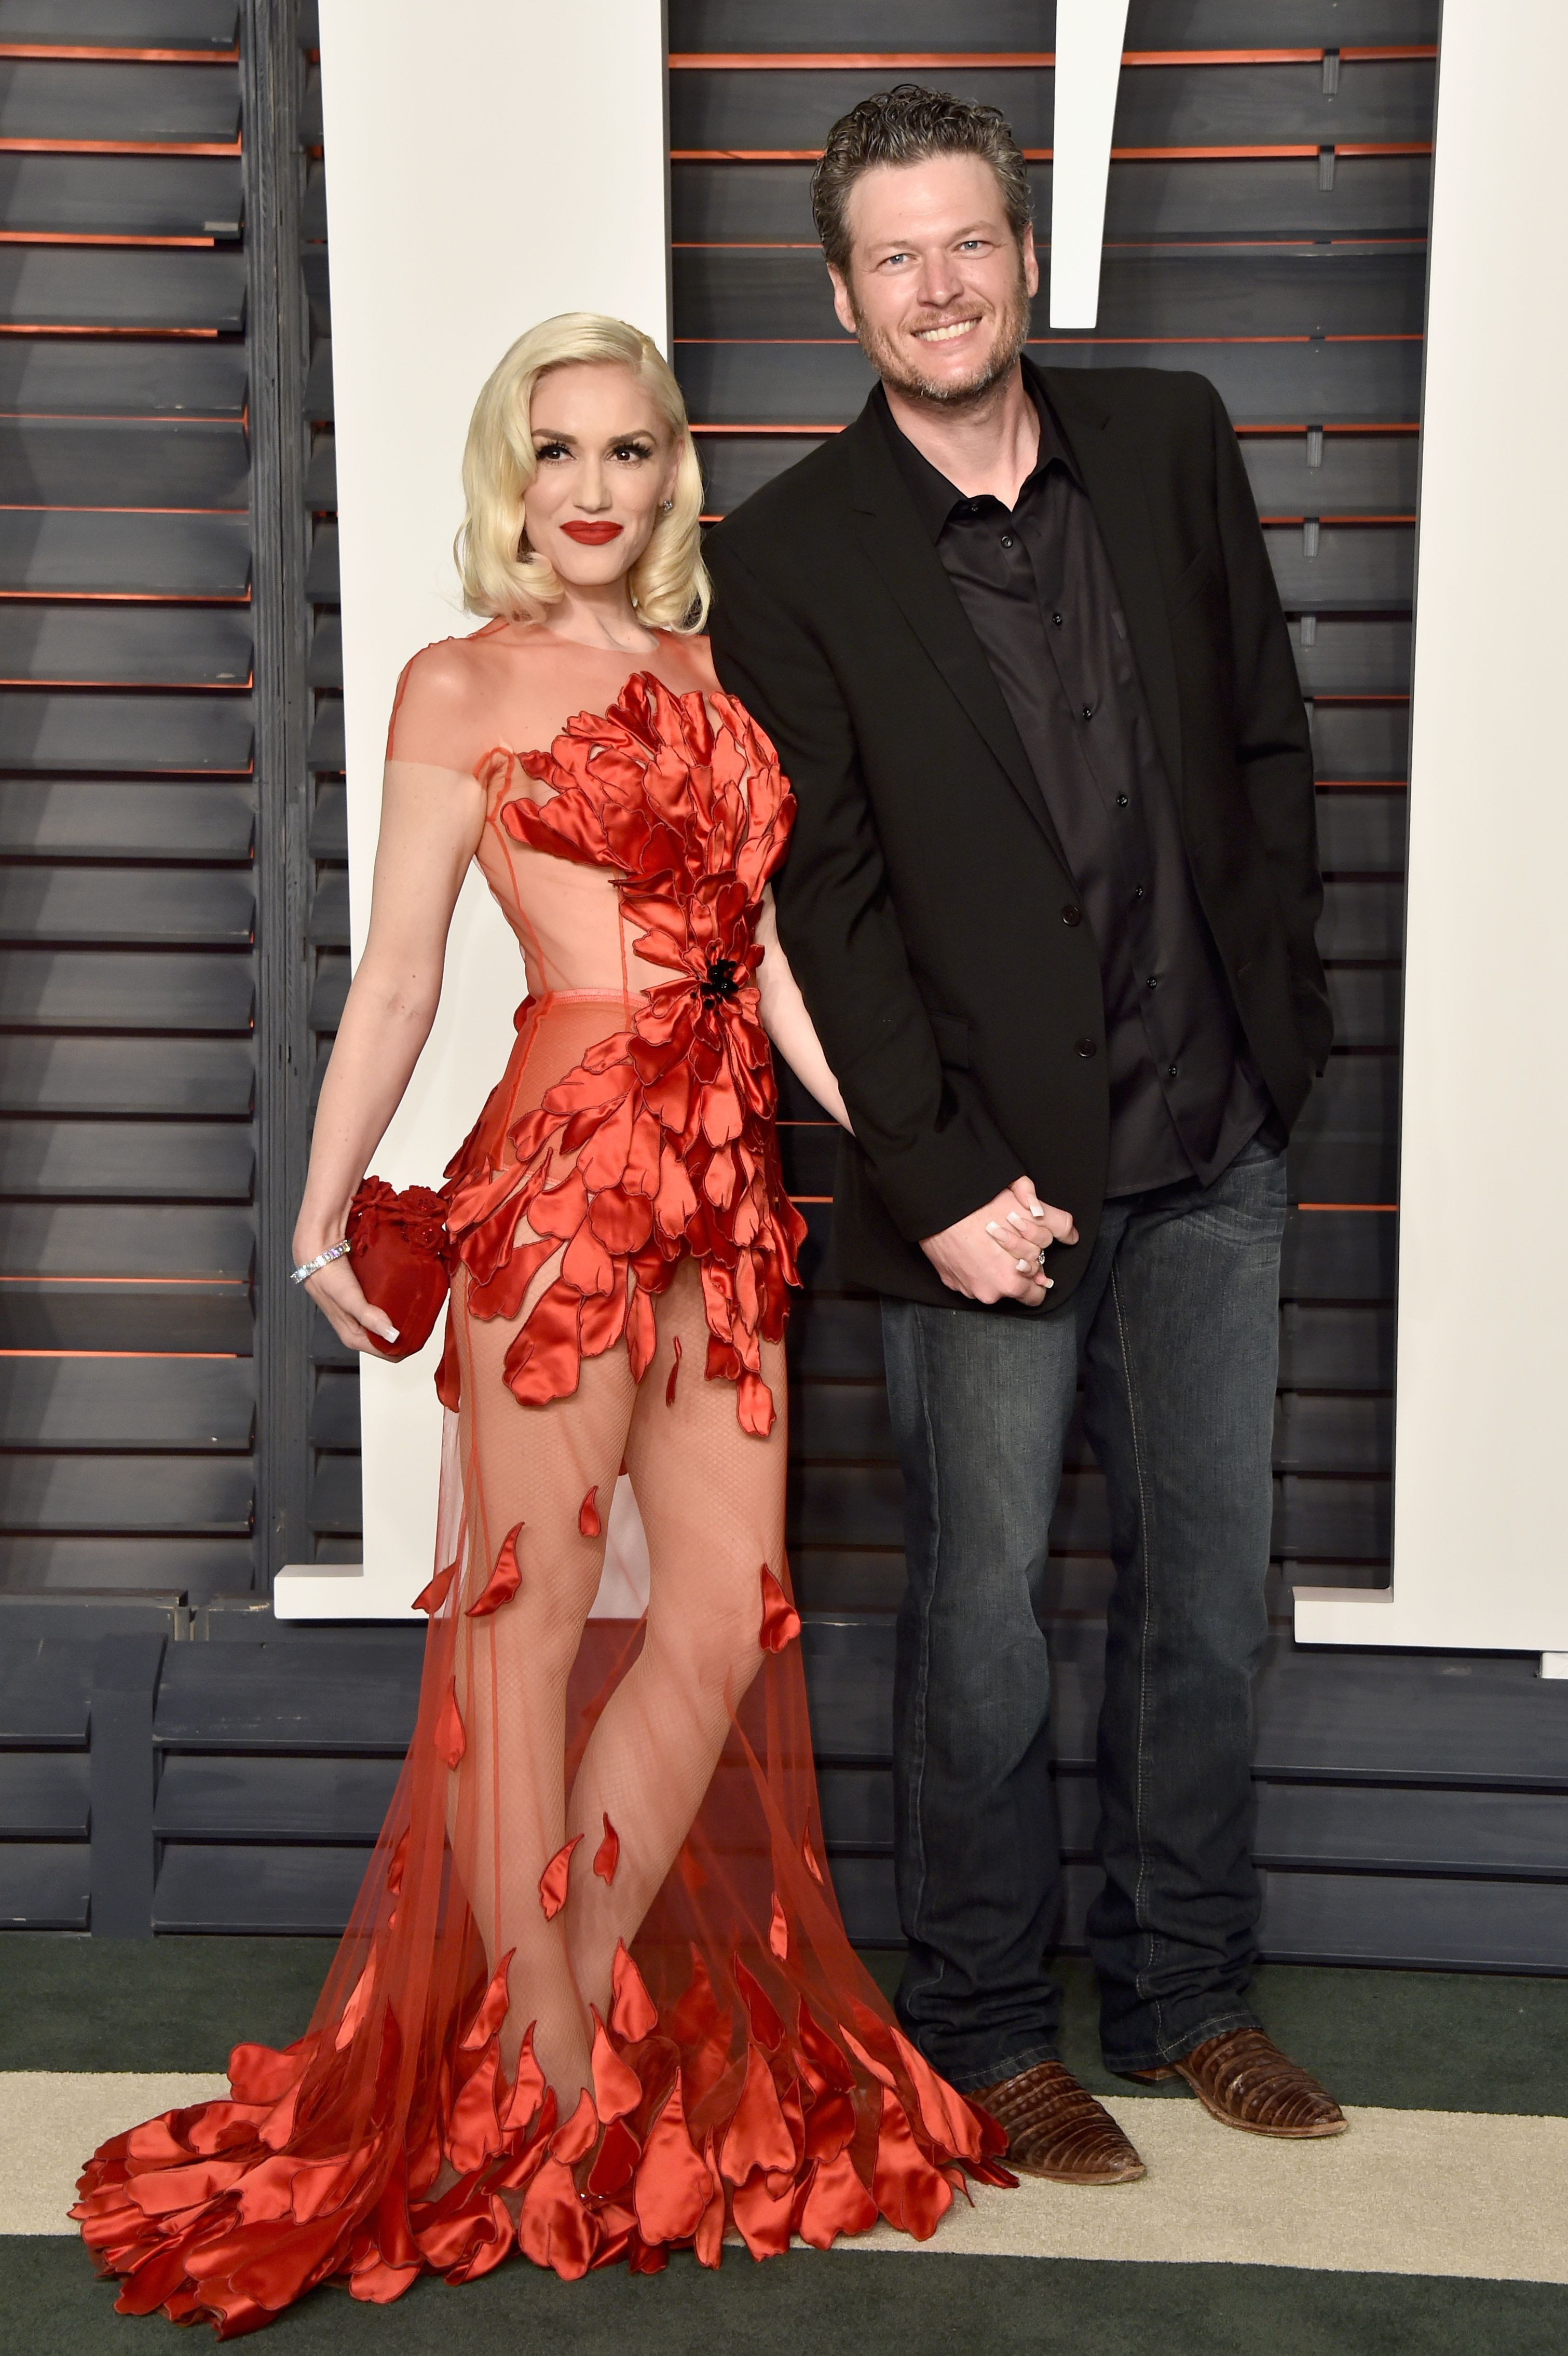 Gwen Stefani and Blake Shelton at the Vanity Fair Oscar Party on February 28, 2016, in Beverly Hills, California | Photo: Pascal Le Segretain/Getty Images